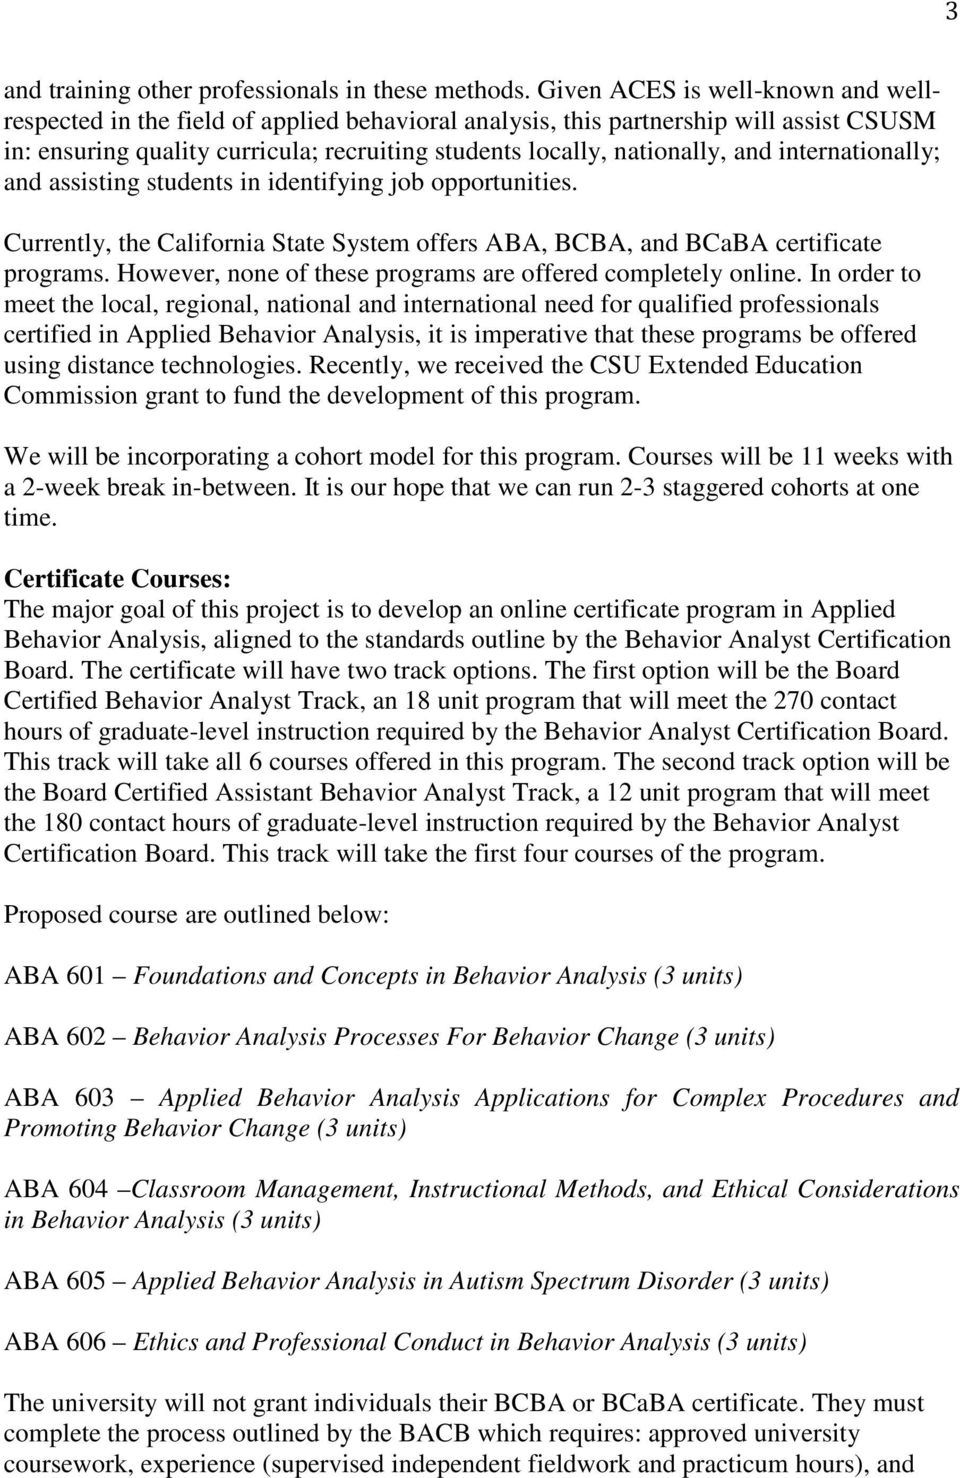 California State University San Marcos Proposal For New Certificate